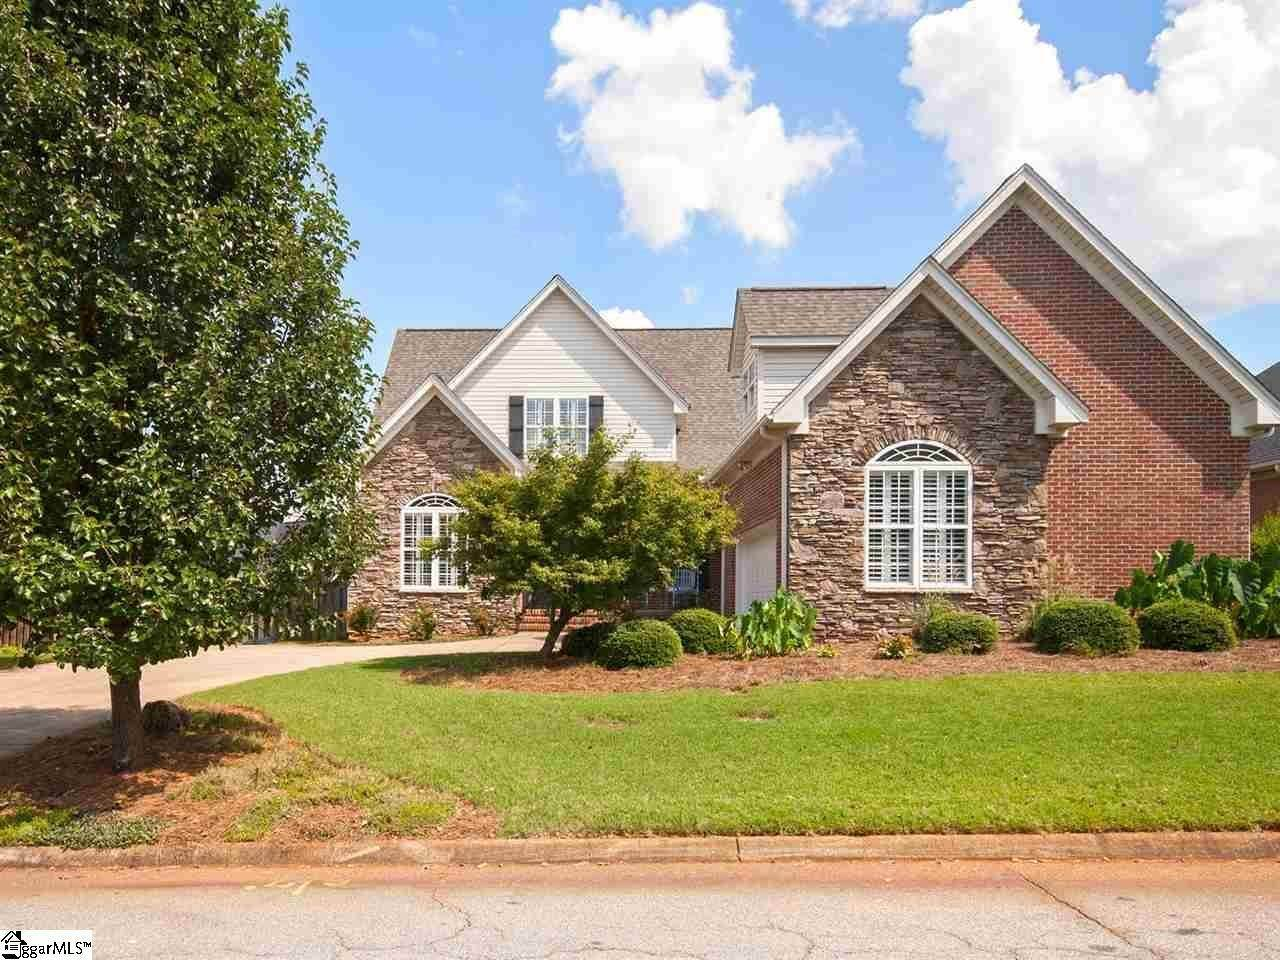 Single Family Homes at Greer, SC 29650